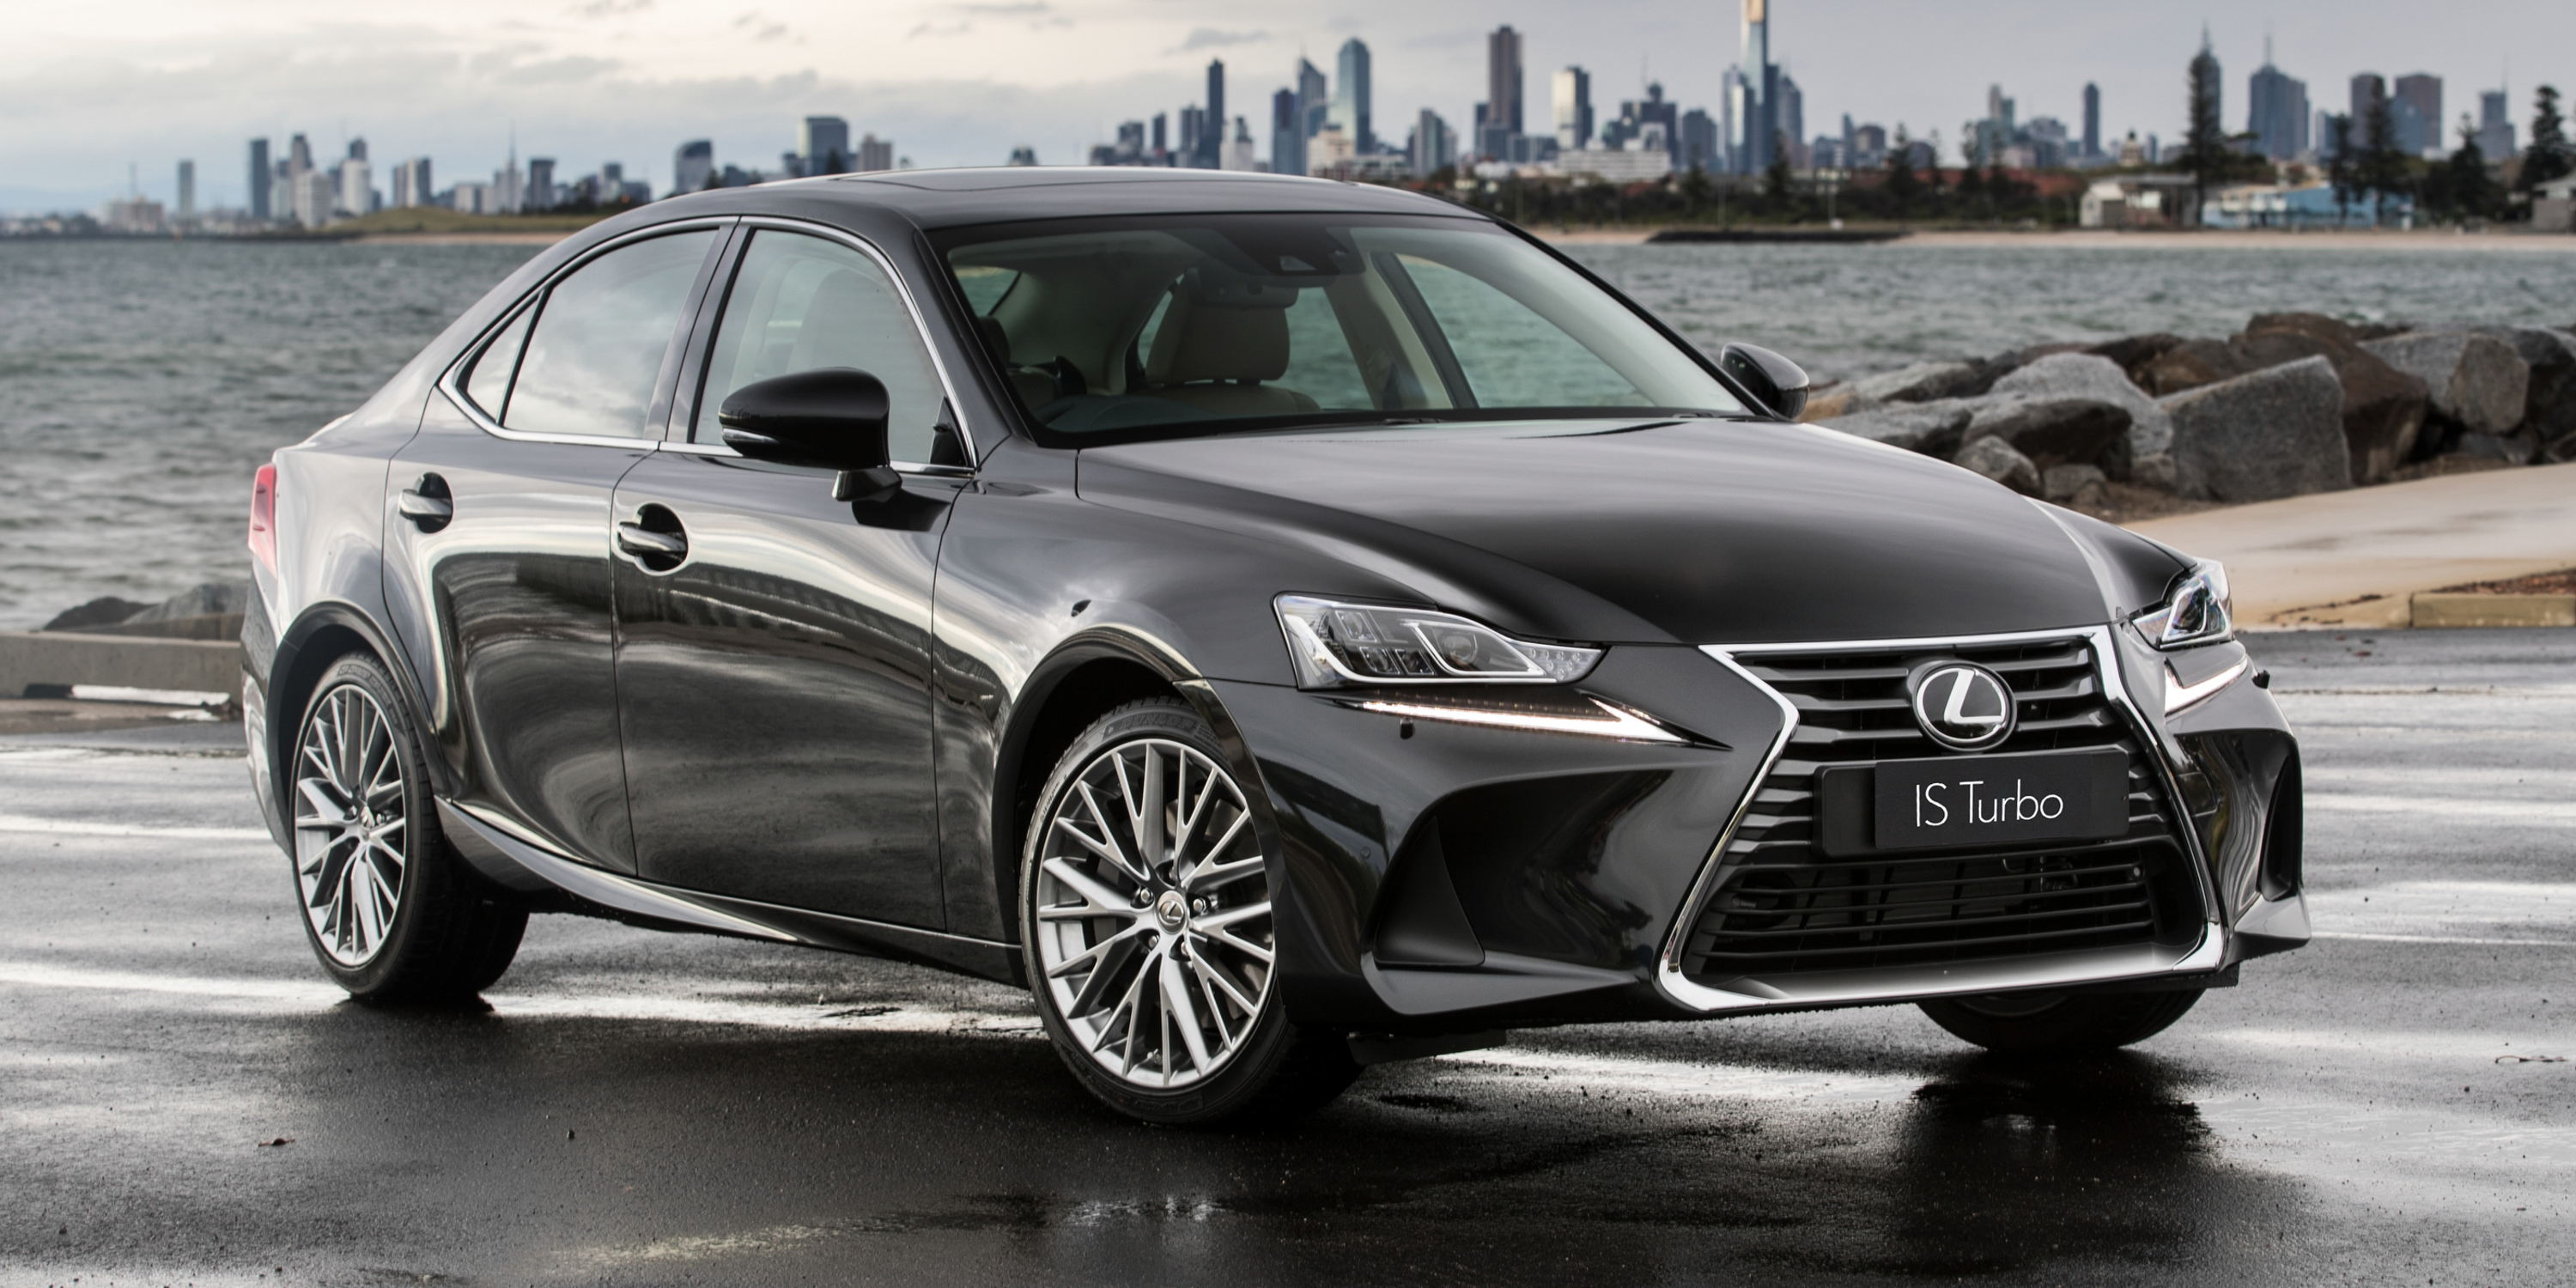 2017 lexus is model range pricing and specs new looks and more kit for mid sized sedan photos. Black Bedroom Furniture Sets. Home Design Ideas